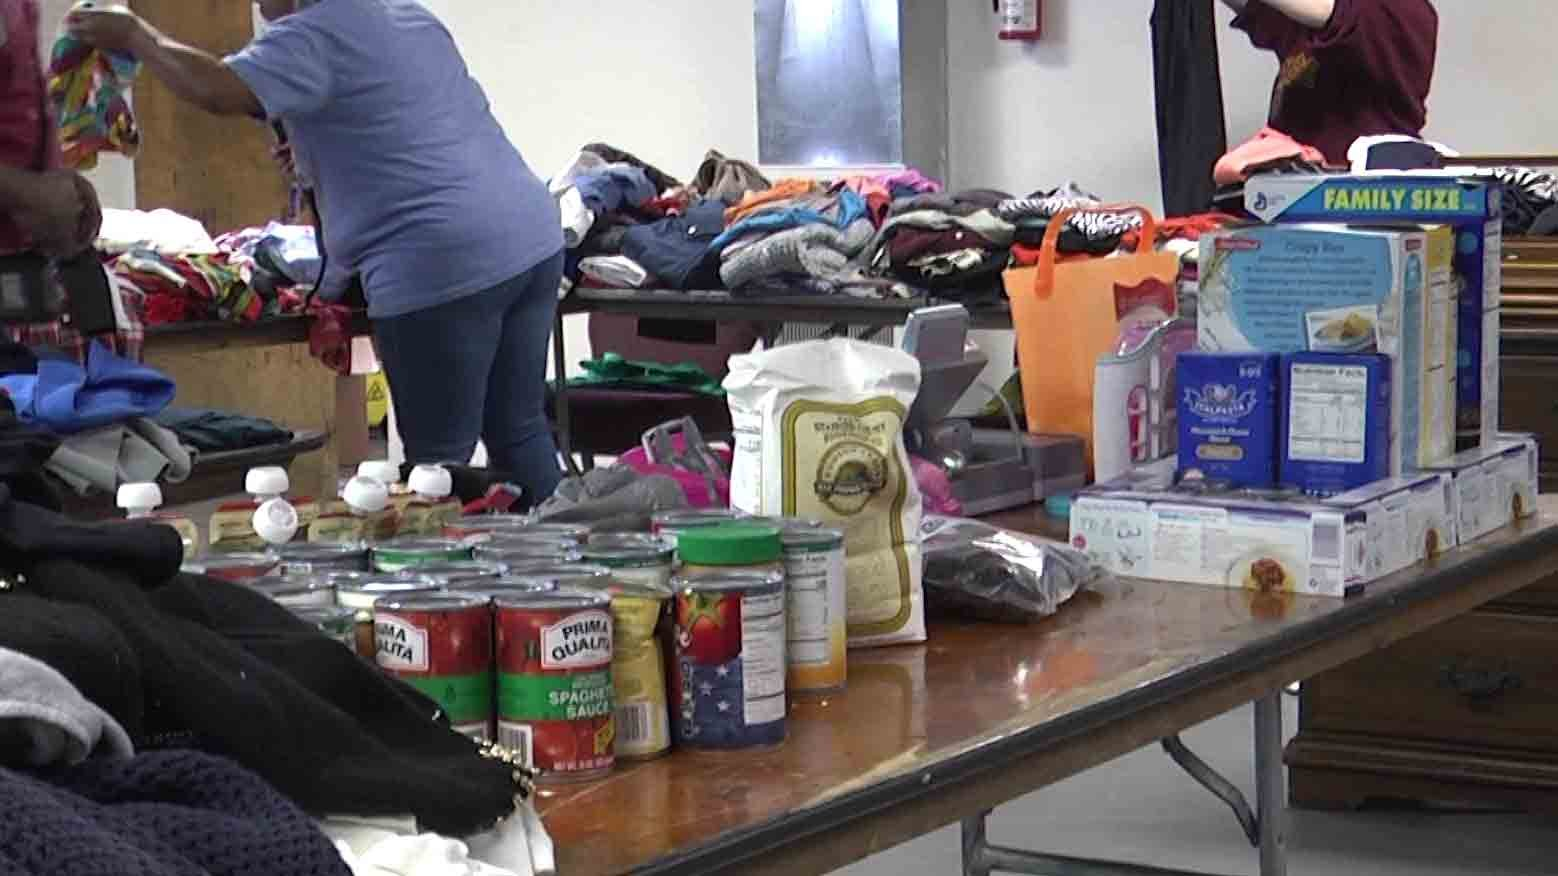 Clothing and food made available to those in the community.